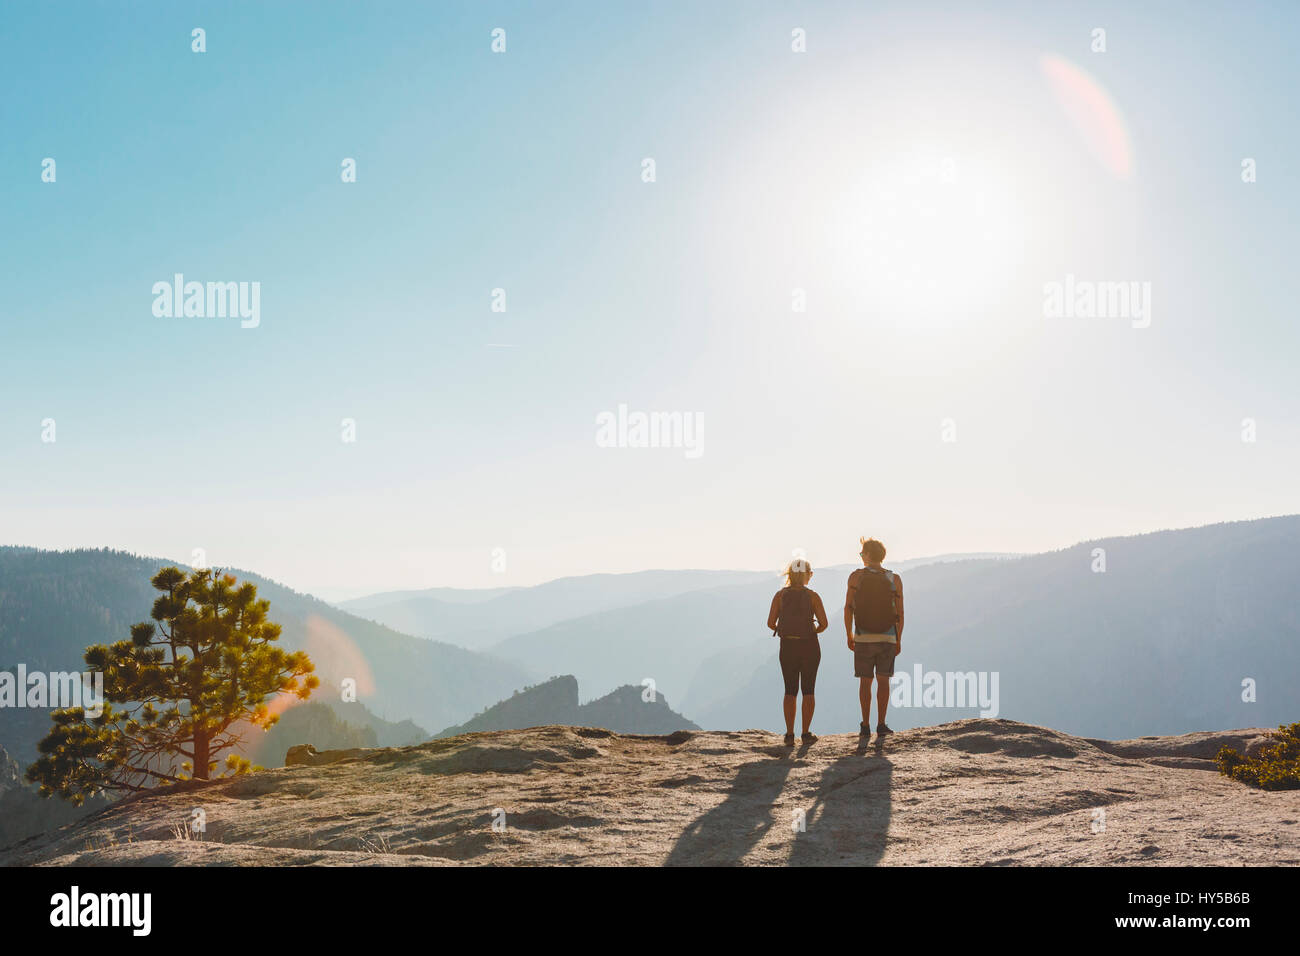 USA, California, Yosemite National Park, Woman and man at Taft Point - Stock Image